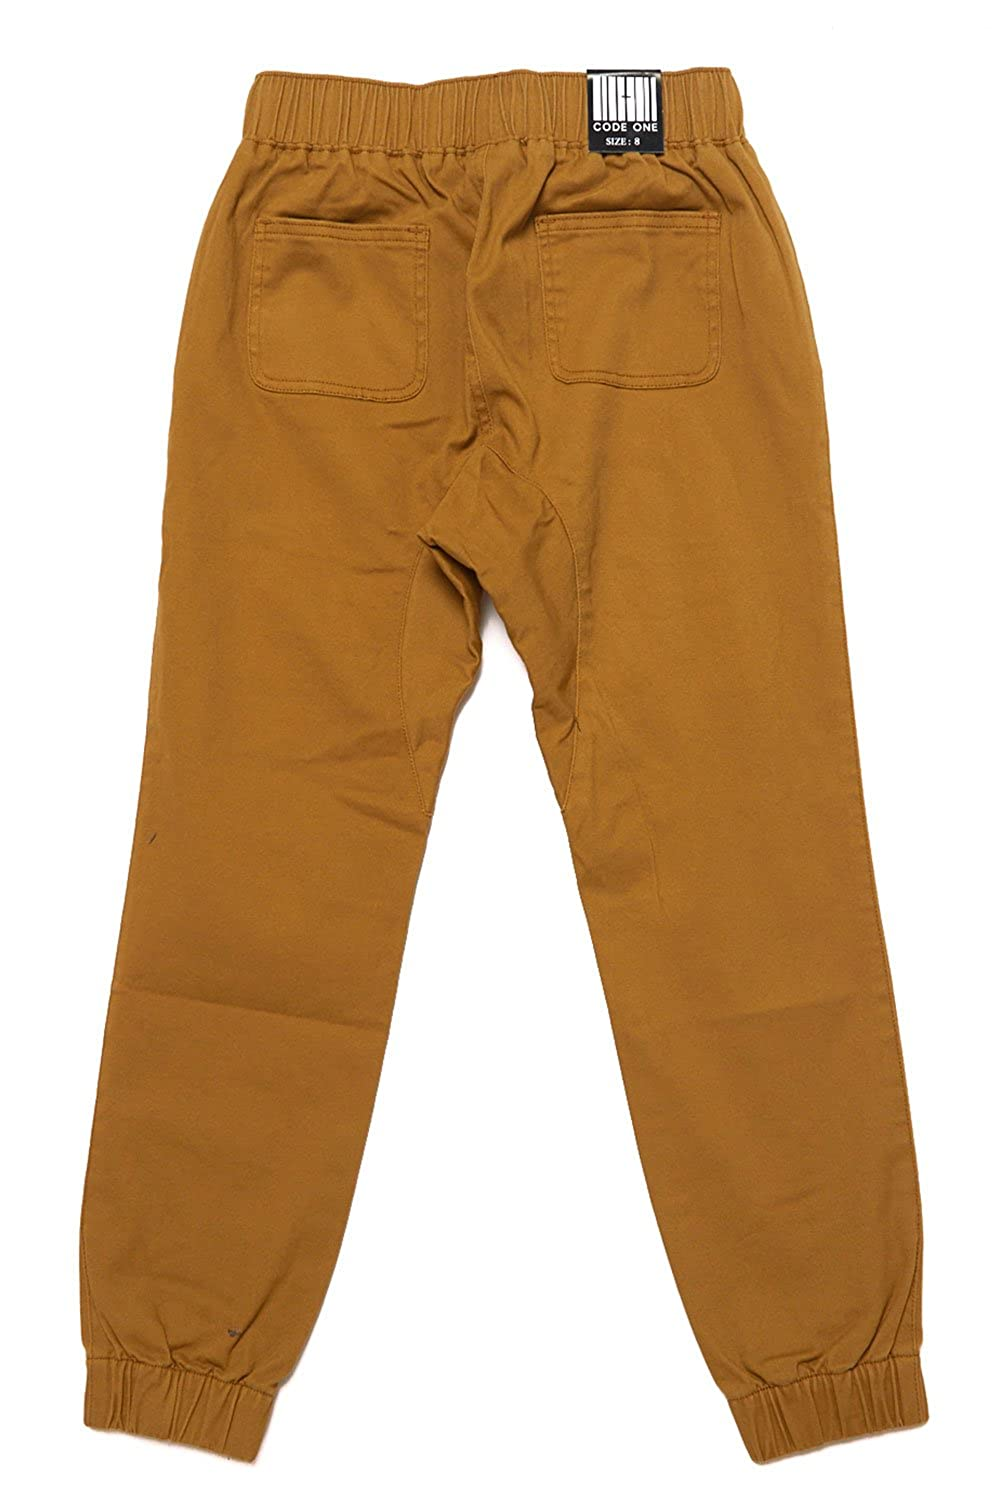 Boys Casual Bending Elastic Drawstring Jogger Pants COKJ-71 4, Wheat